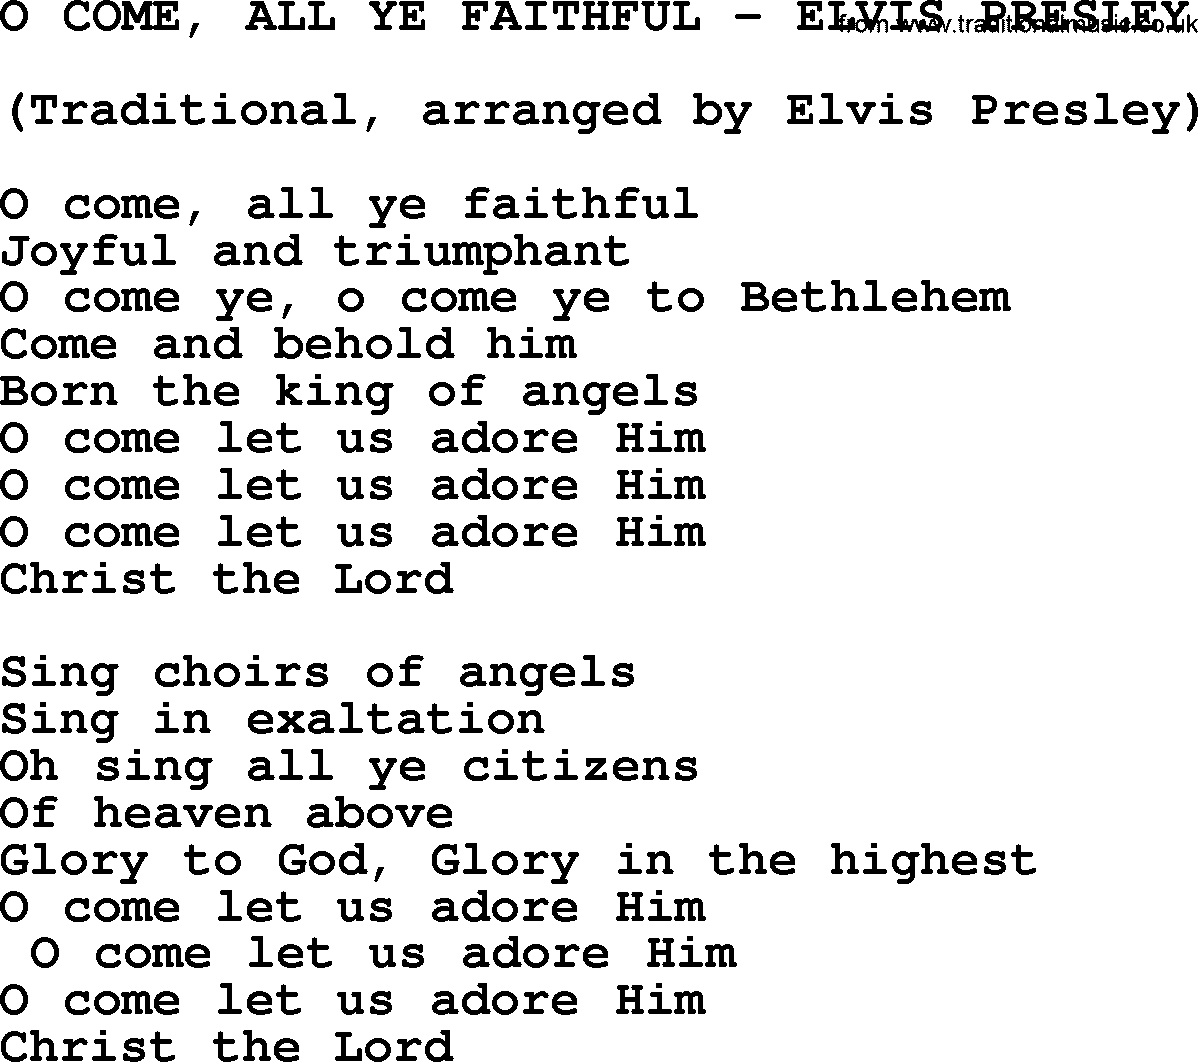 O Come All Ye Faithful Elvis Presley Txt By Elvis Presley